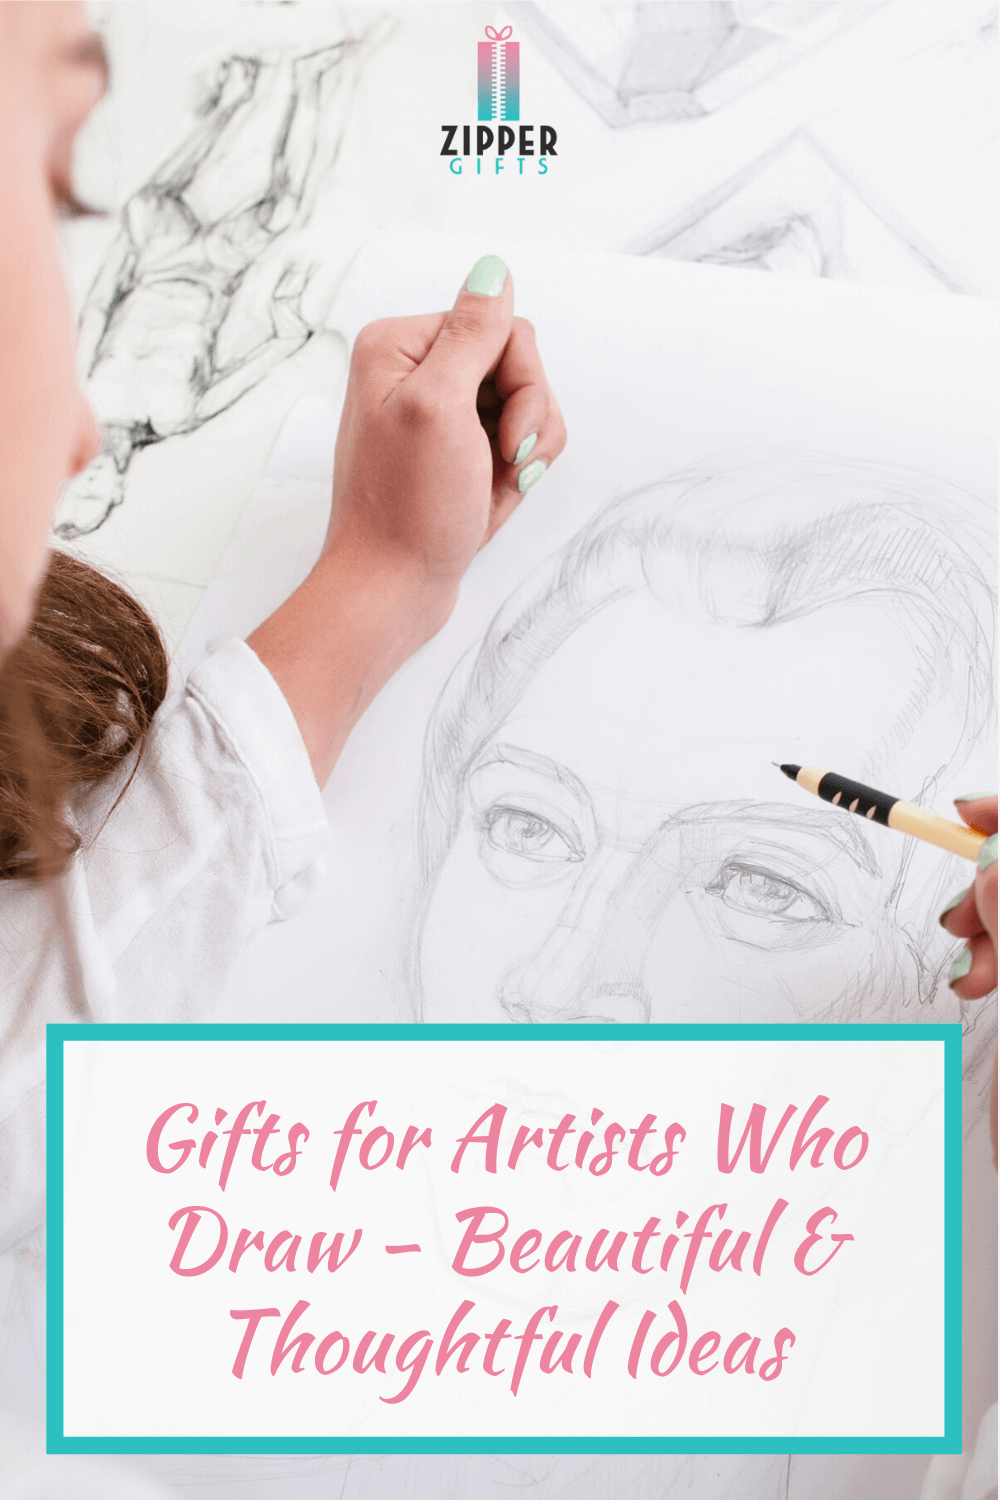 Gifts For Artists Who Draw Beautiful & Thoughtful Ideas